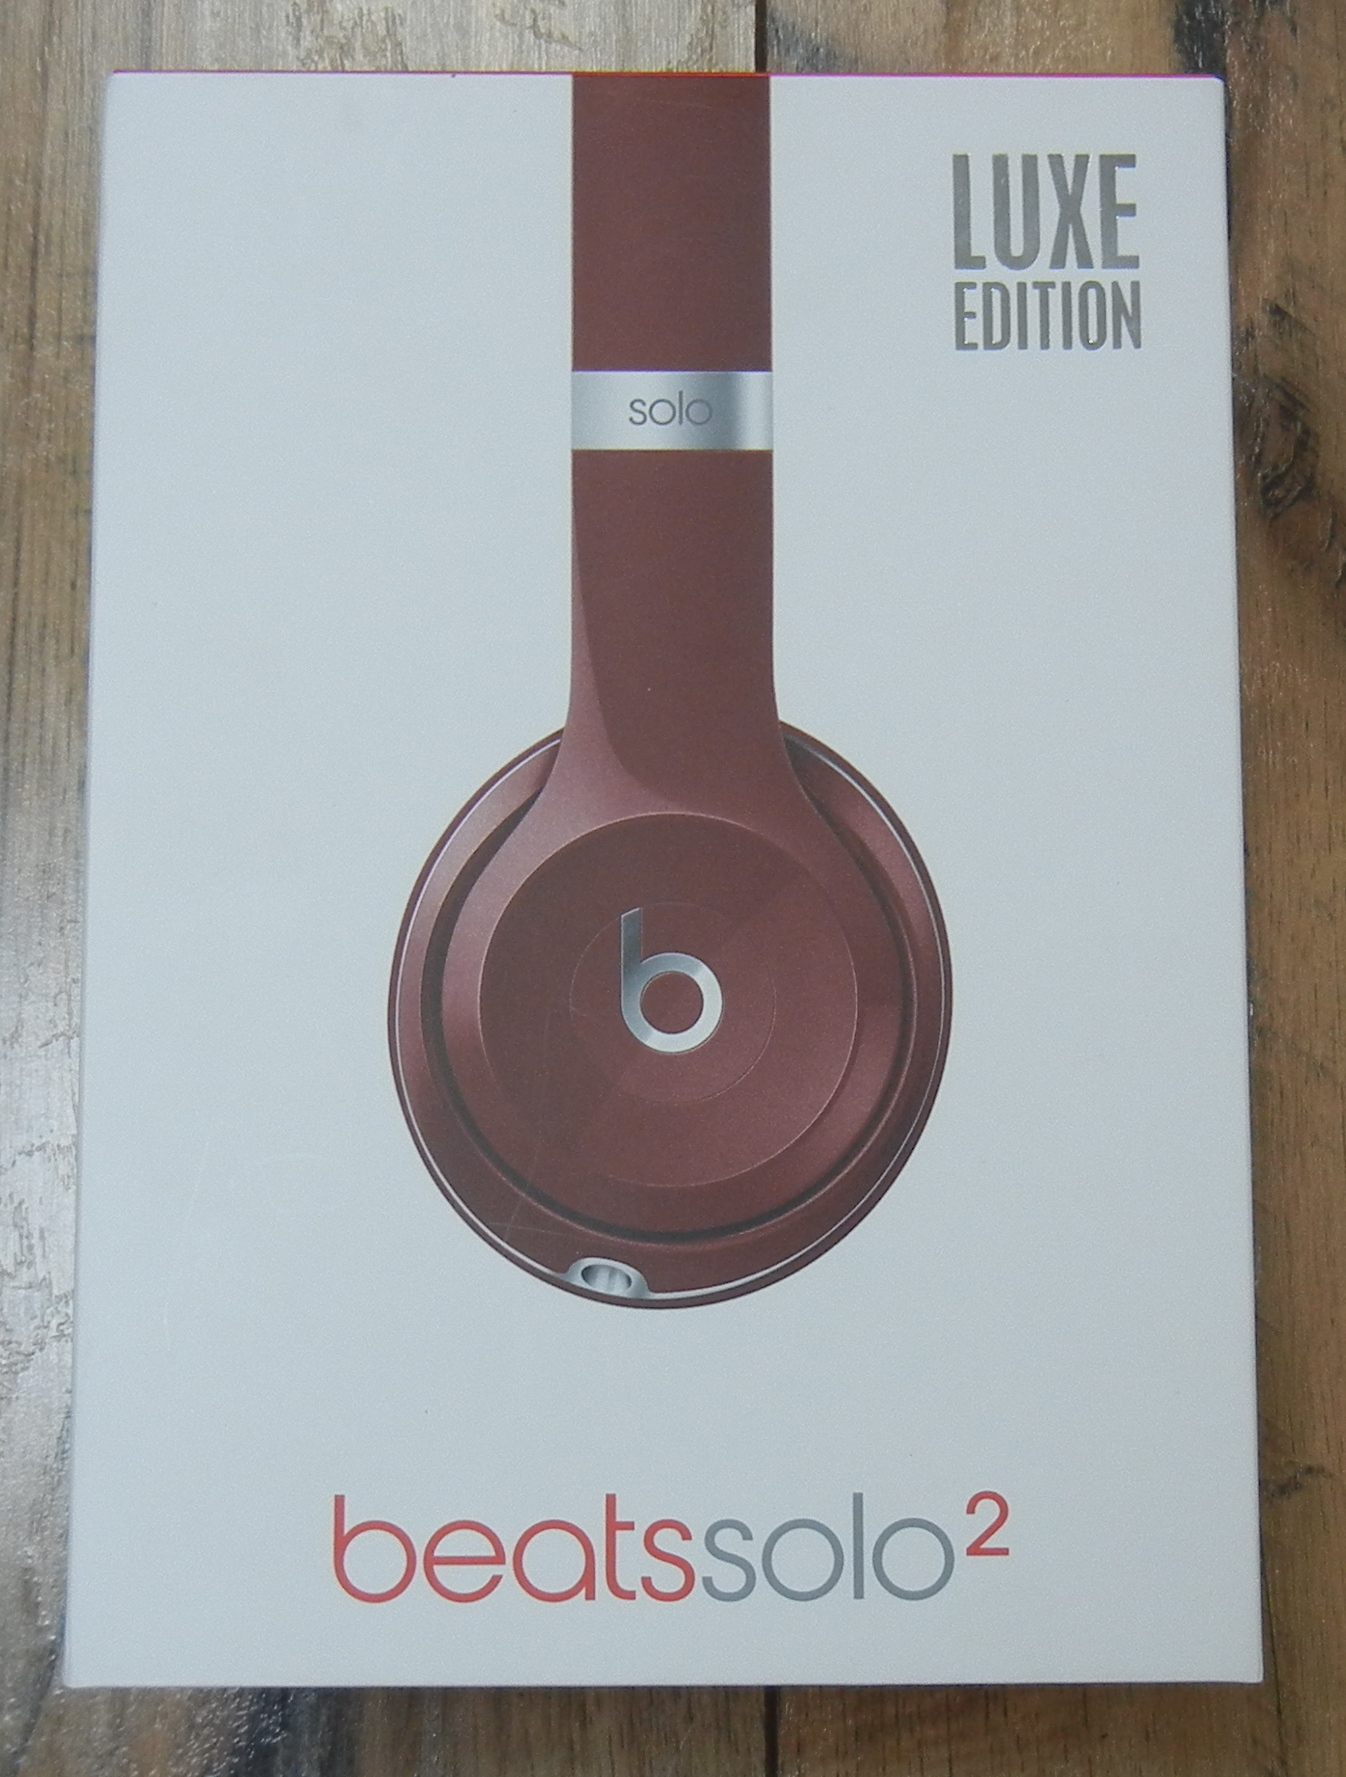 BEATS SOLO 2 HEADPHONES - B0518 LUXE EDITION **NEVER USED**